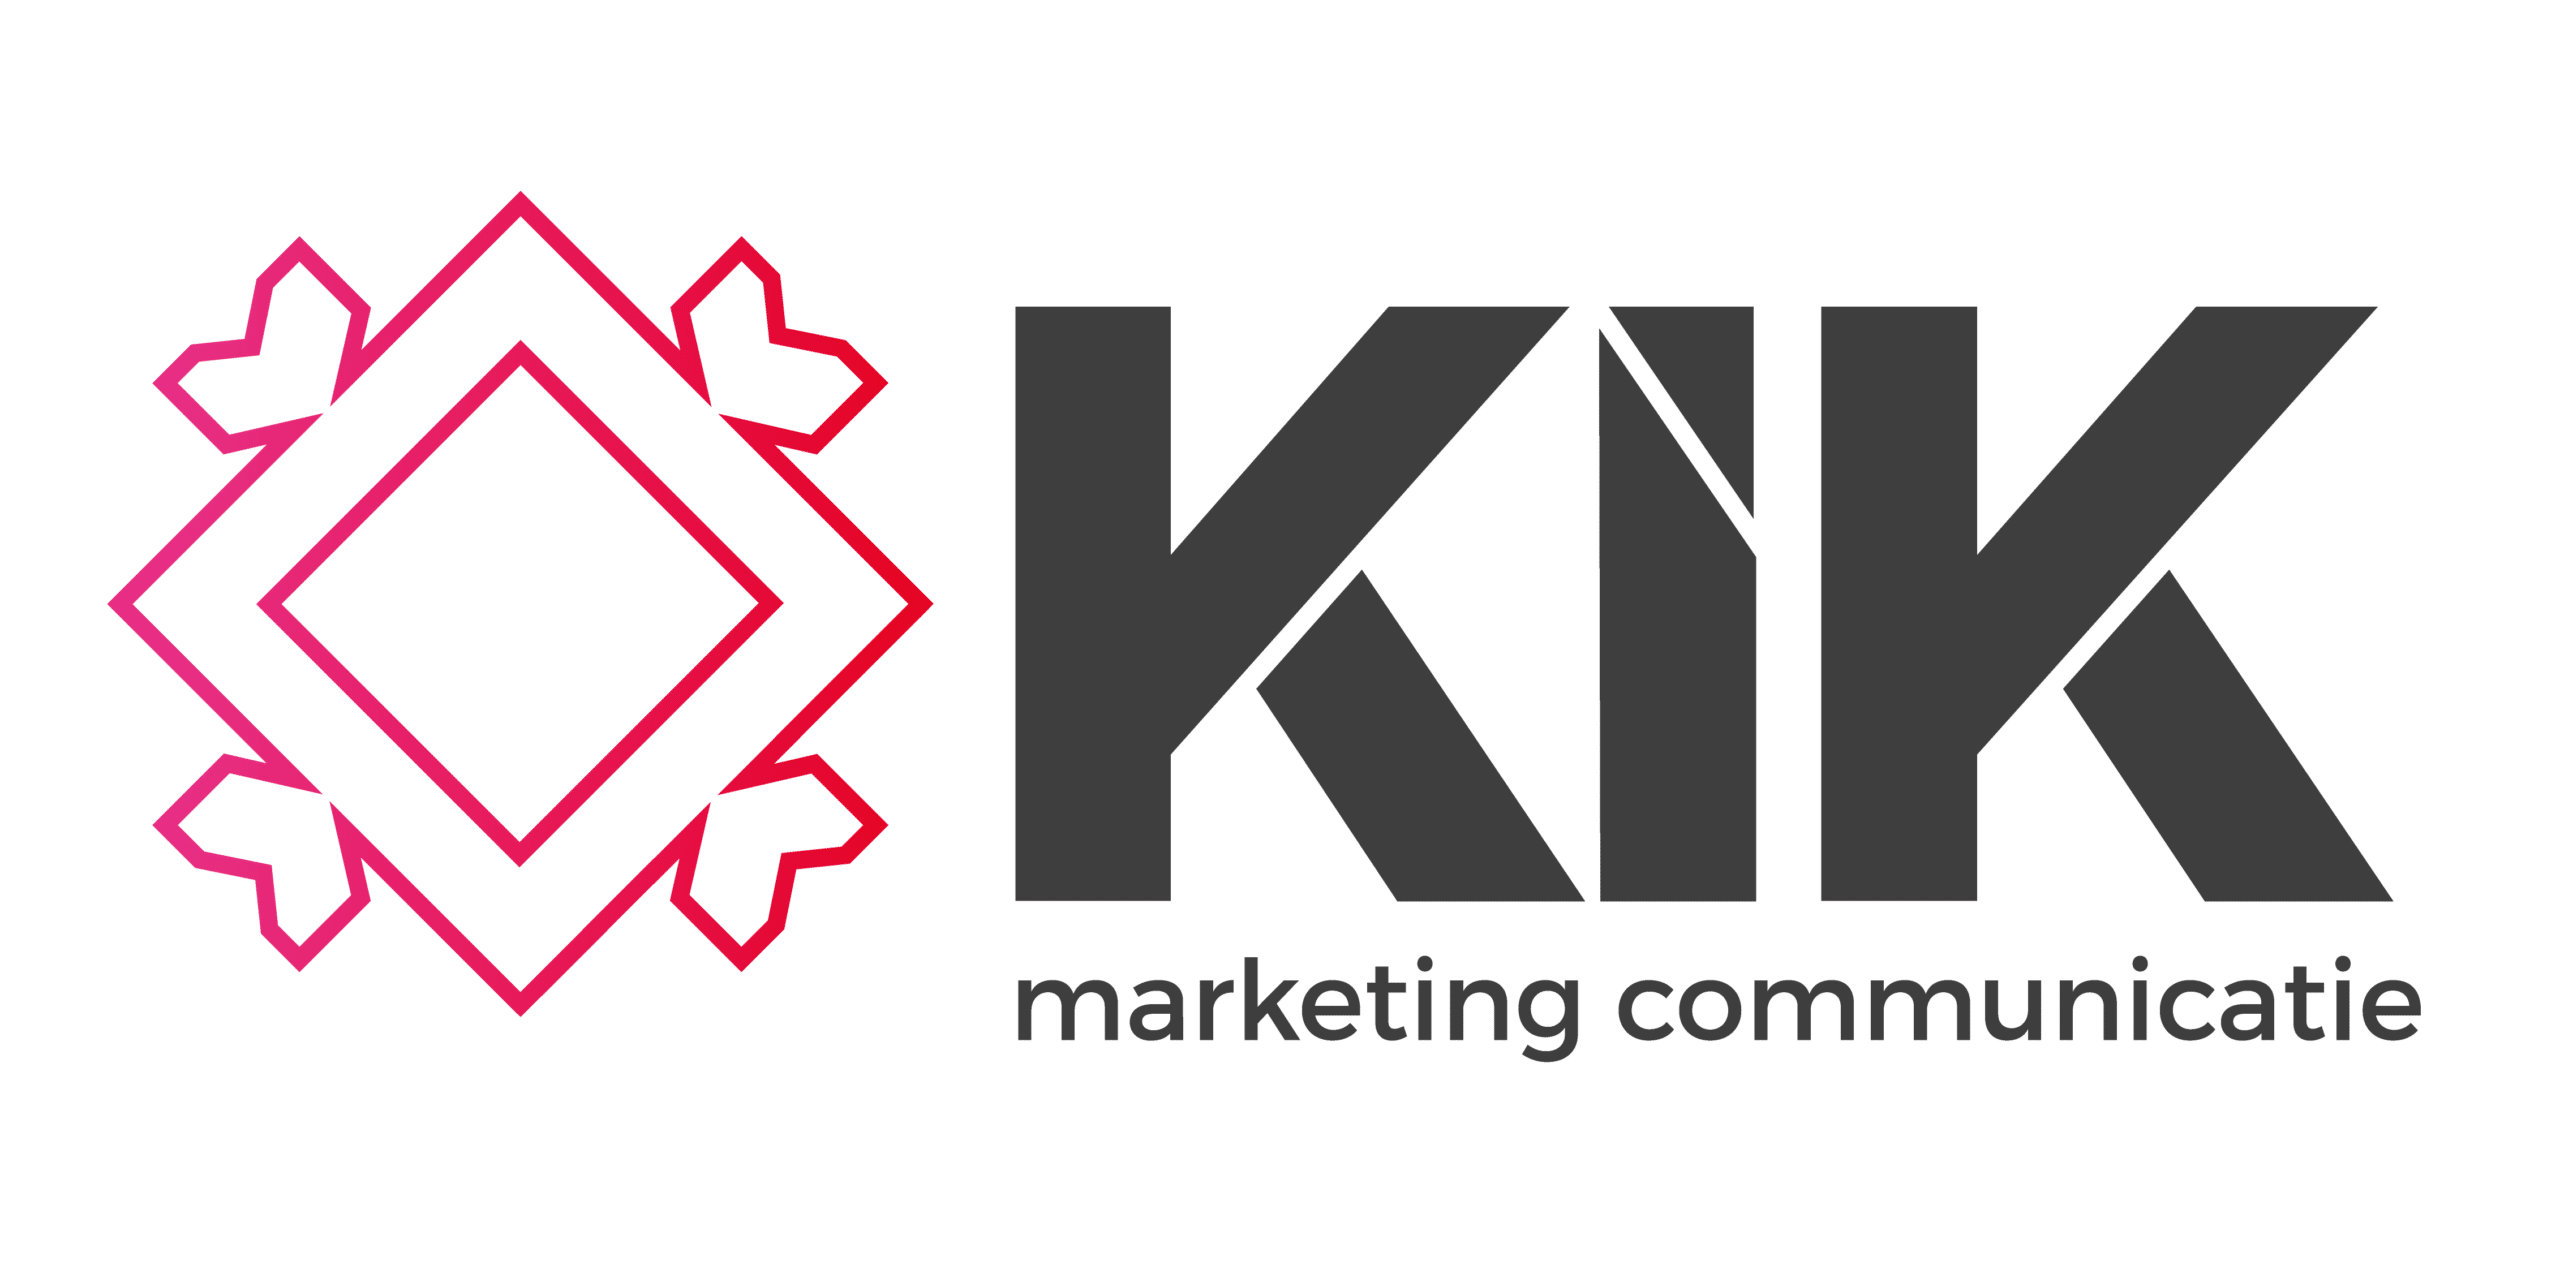 KIK marketing en communicatie